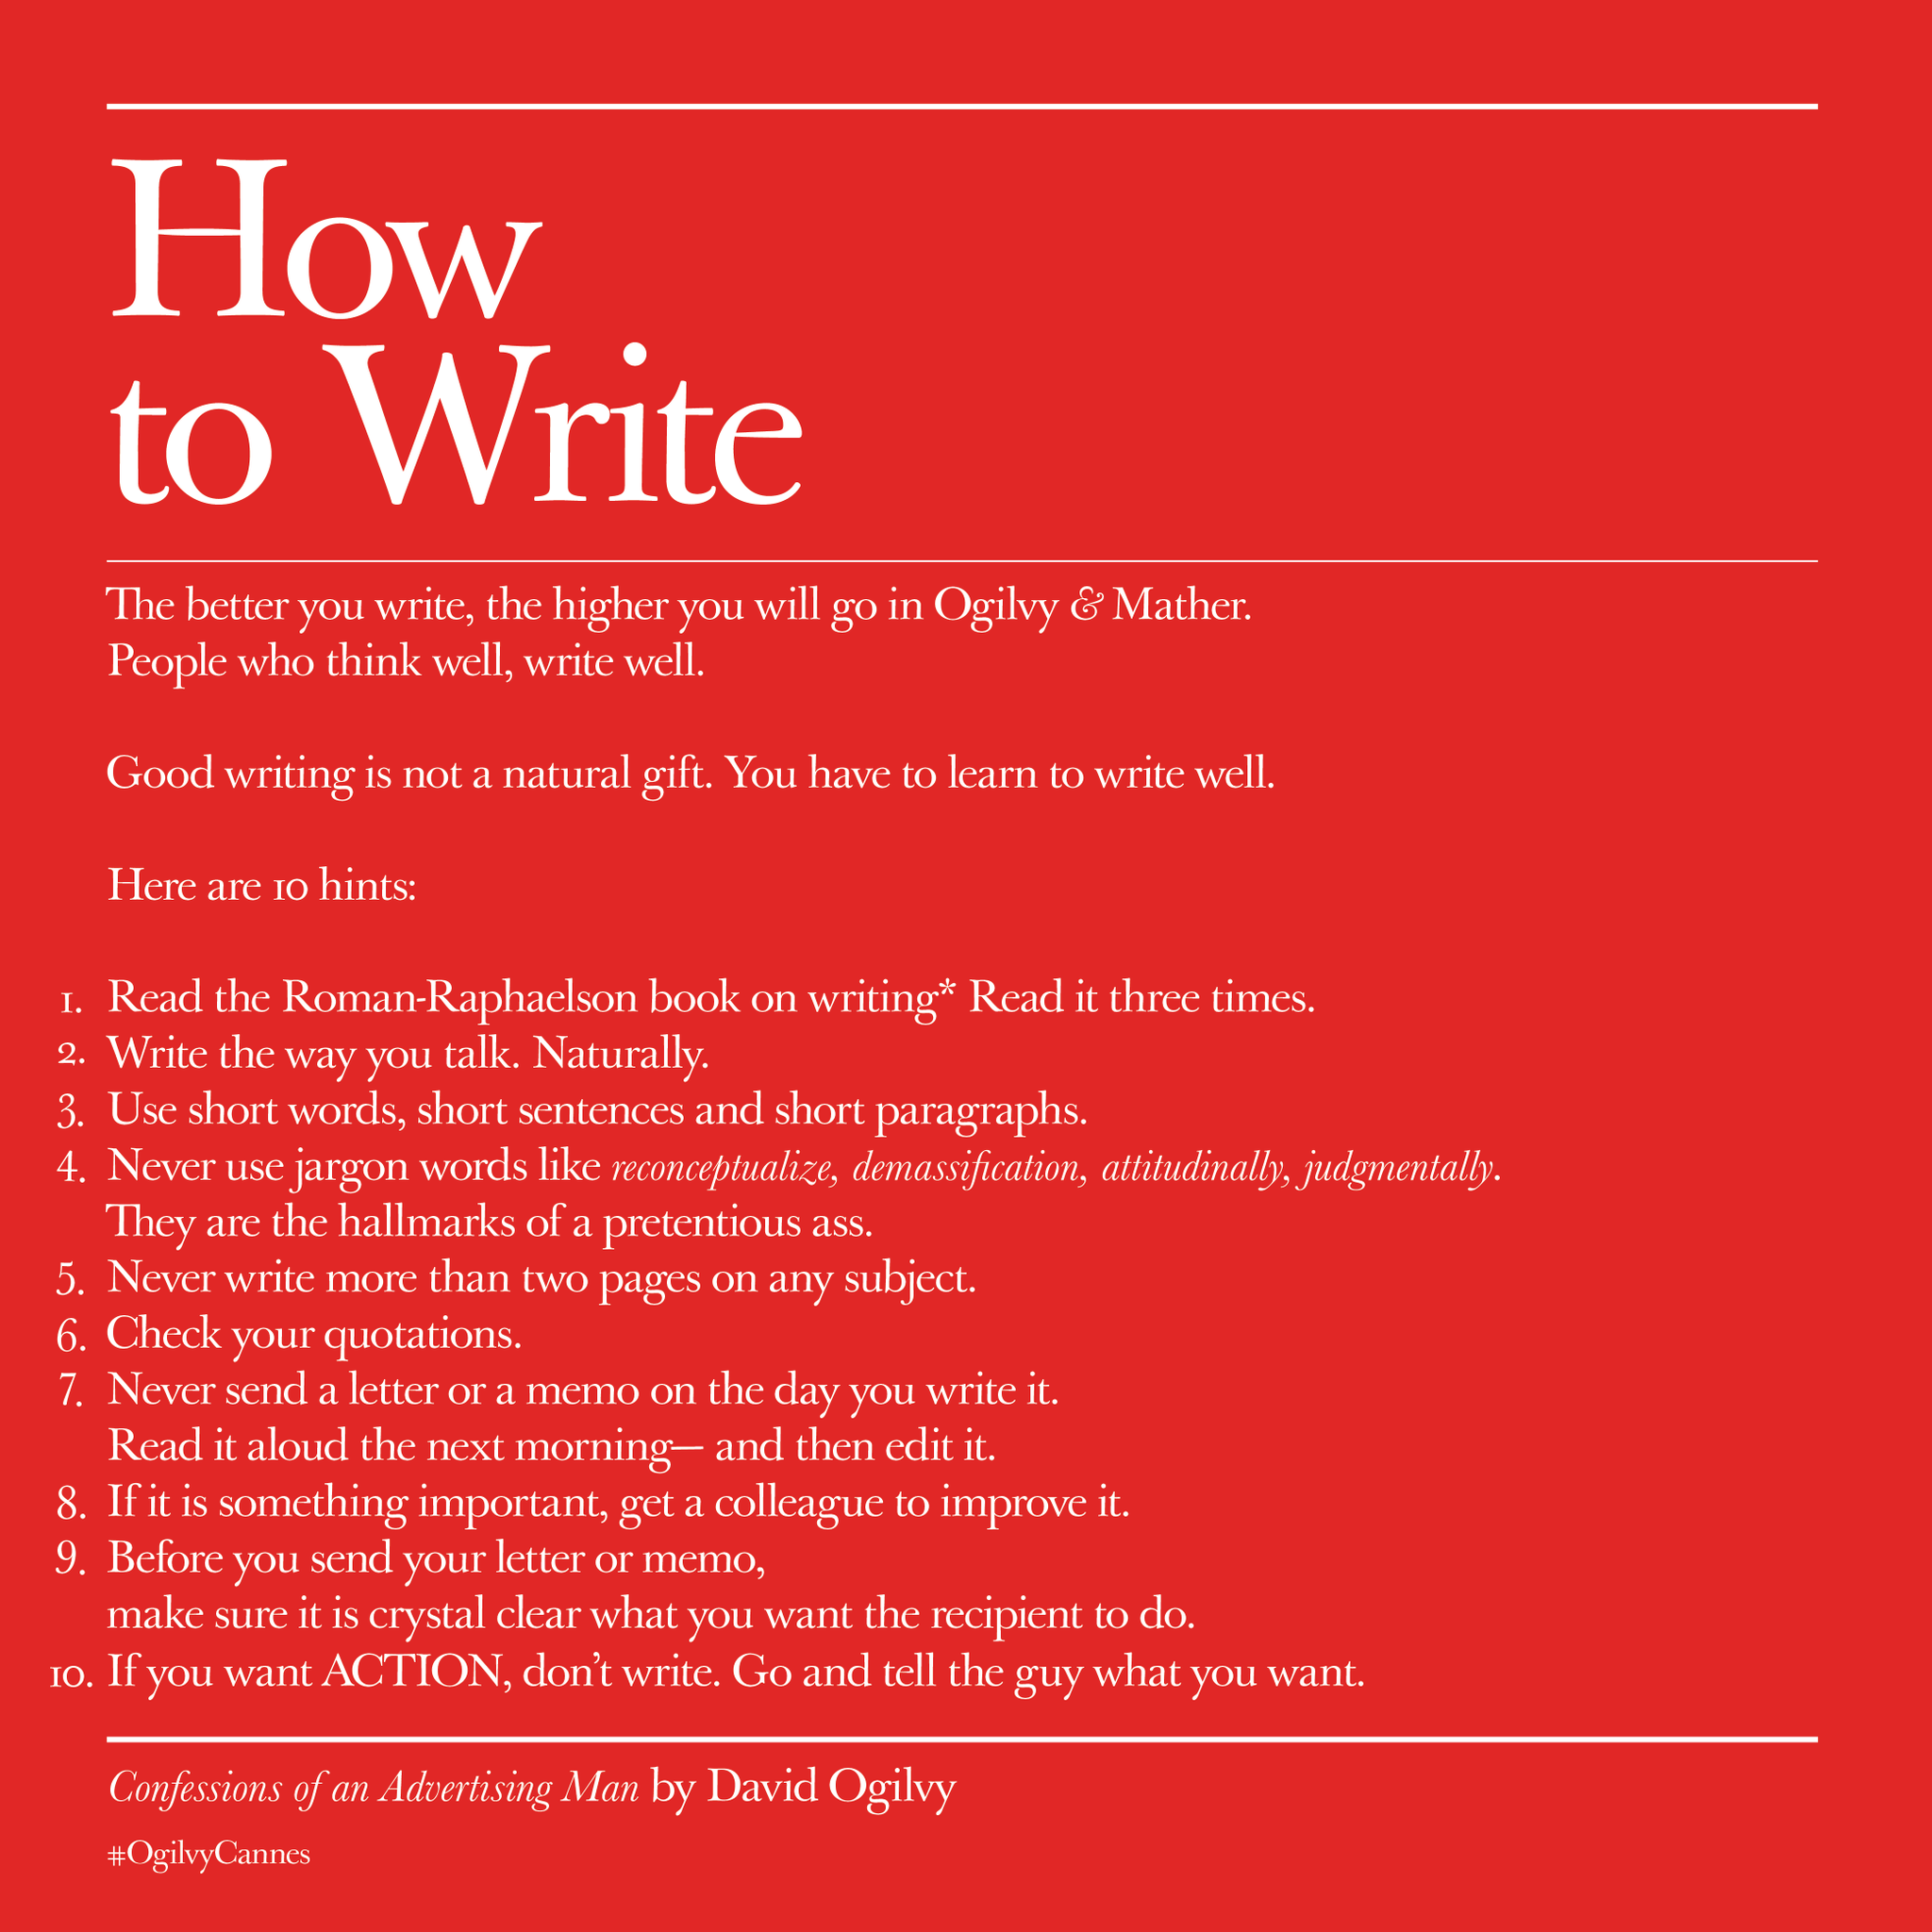 How to Write by #DavidOgilvy #TBT http://t.co/M0rPakOswt